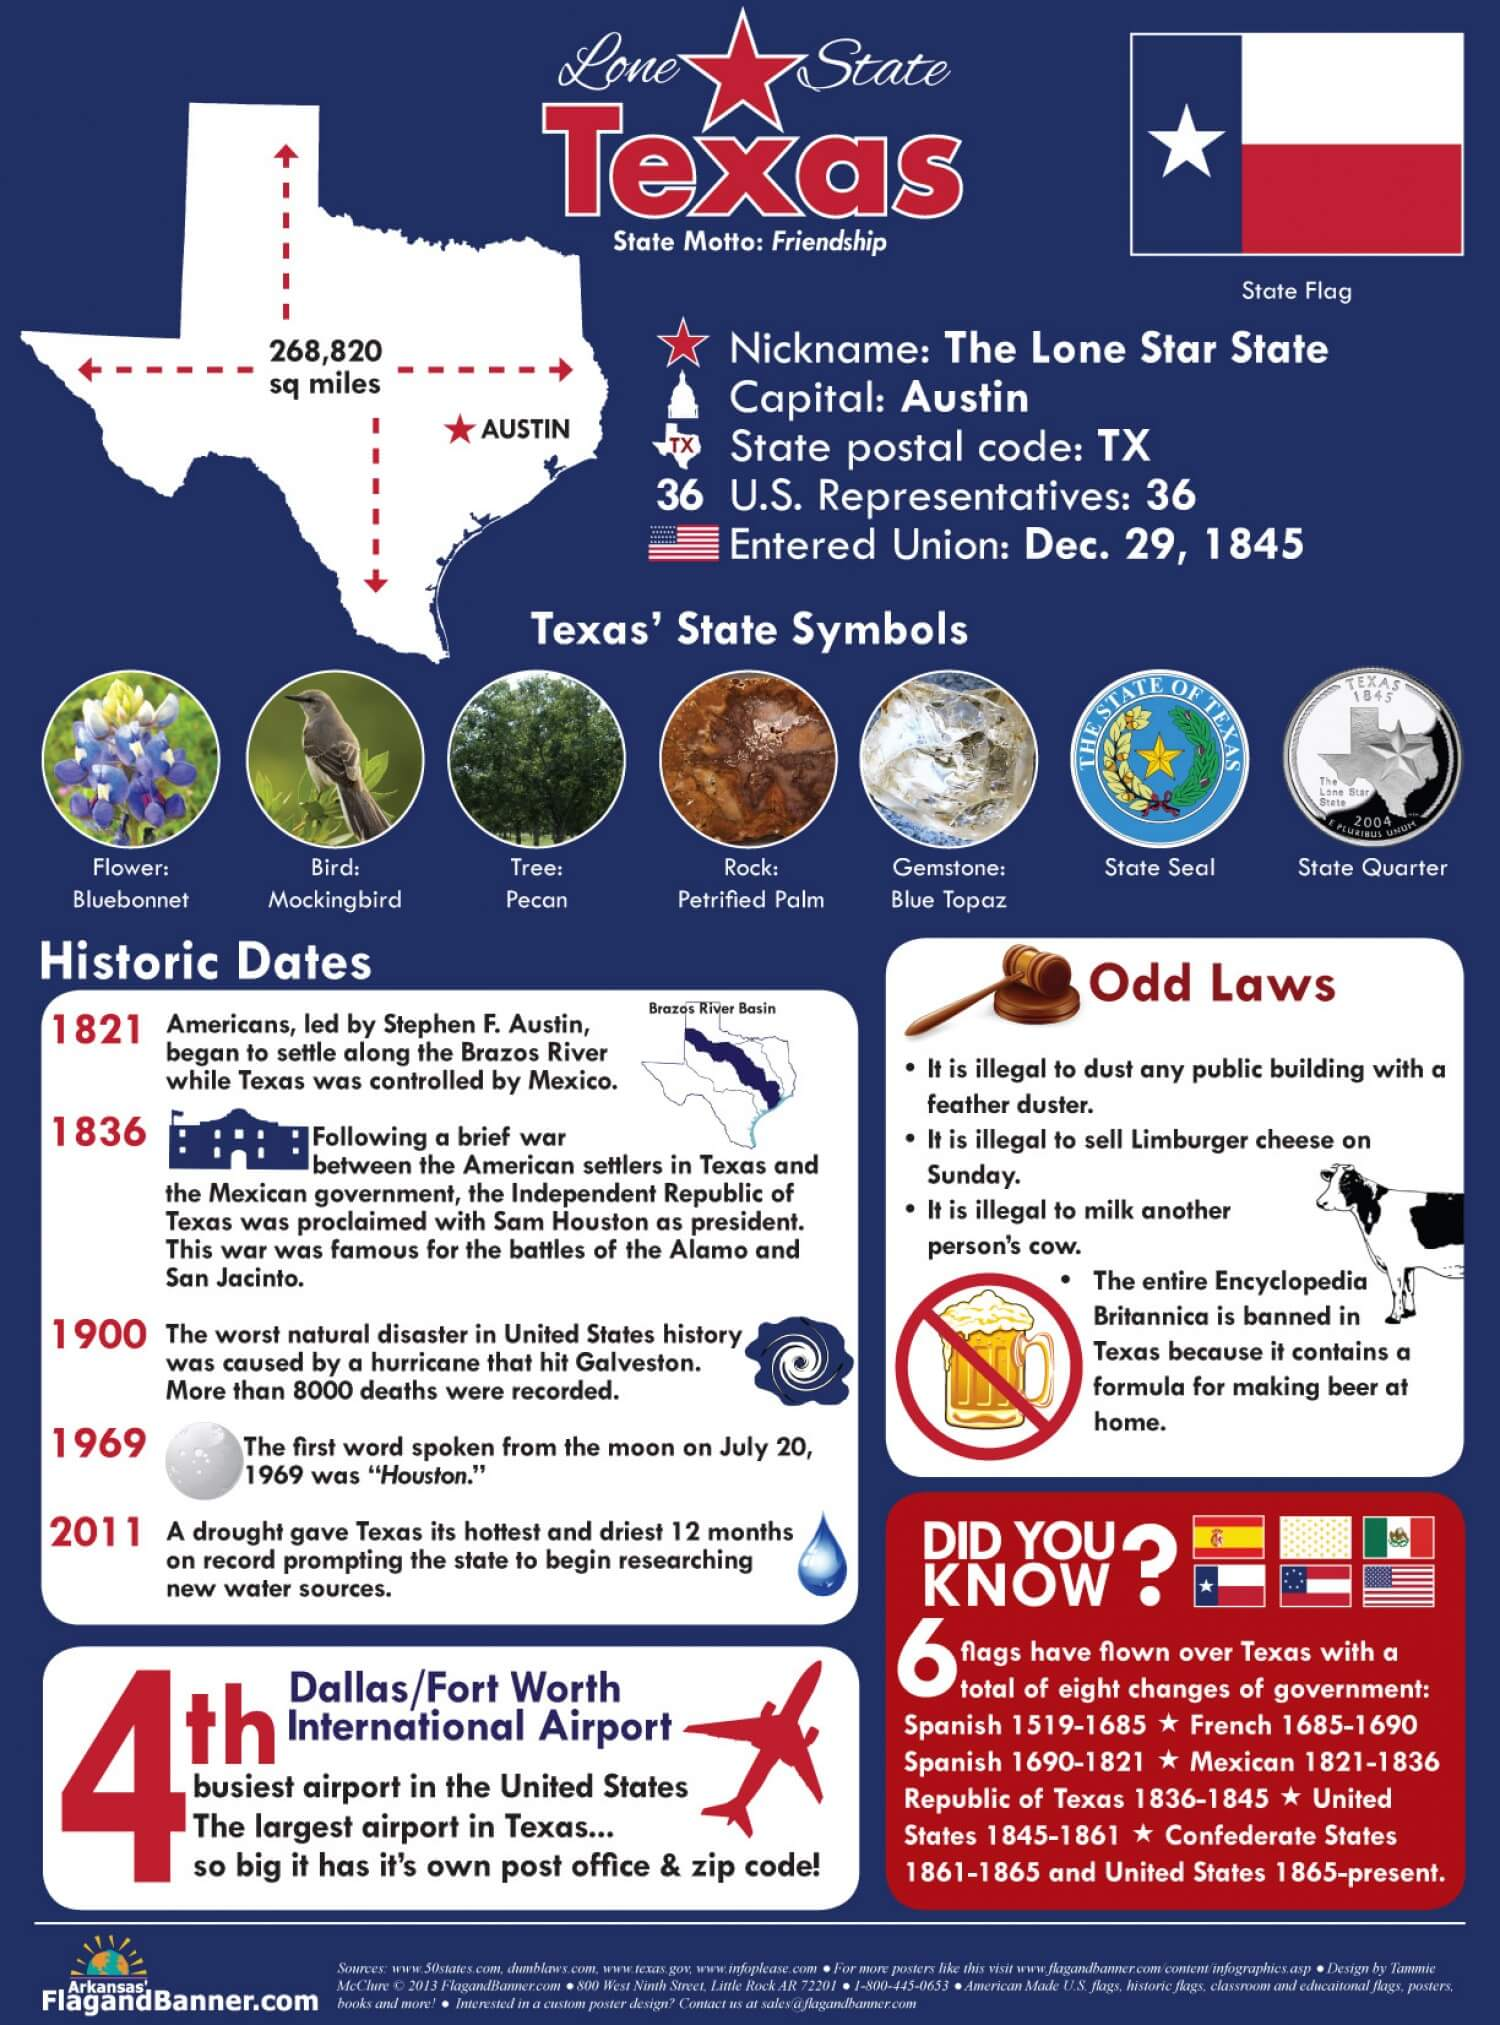 texas-the-lone-star-state_51facd7f87467_w1500